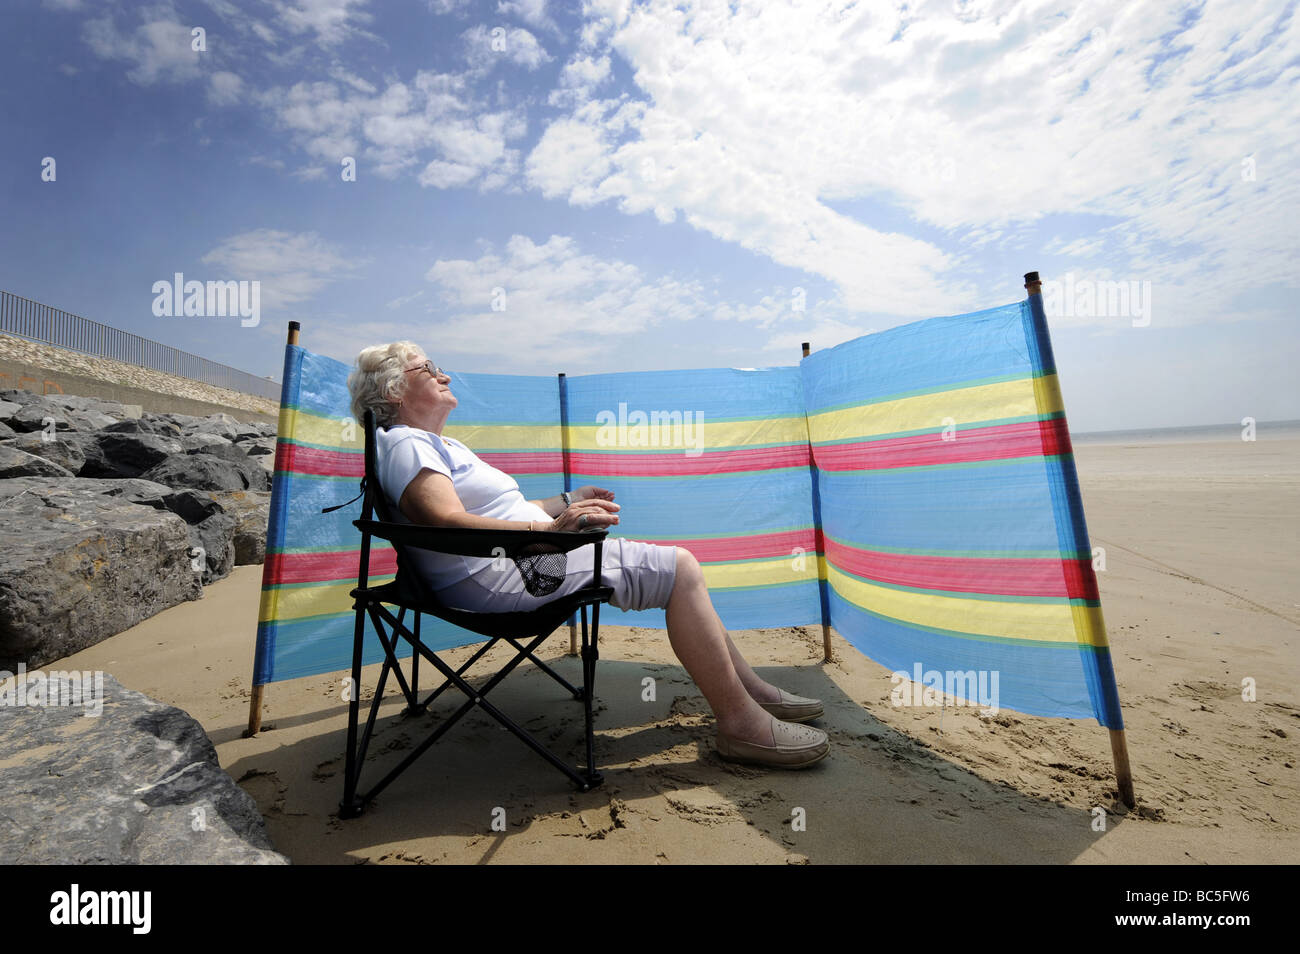 A  OLD AGE PENSIONER ENJOYS SUNBATHING ON A BRITISH BEACH WITH WINDBREAKER RE HOLIDAYS RETIREMENT OAPS PENSIONERS Stock Photo